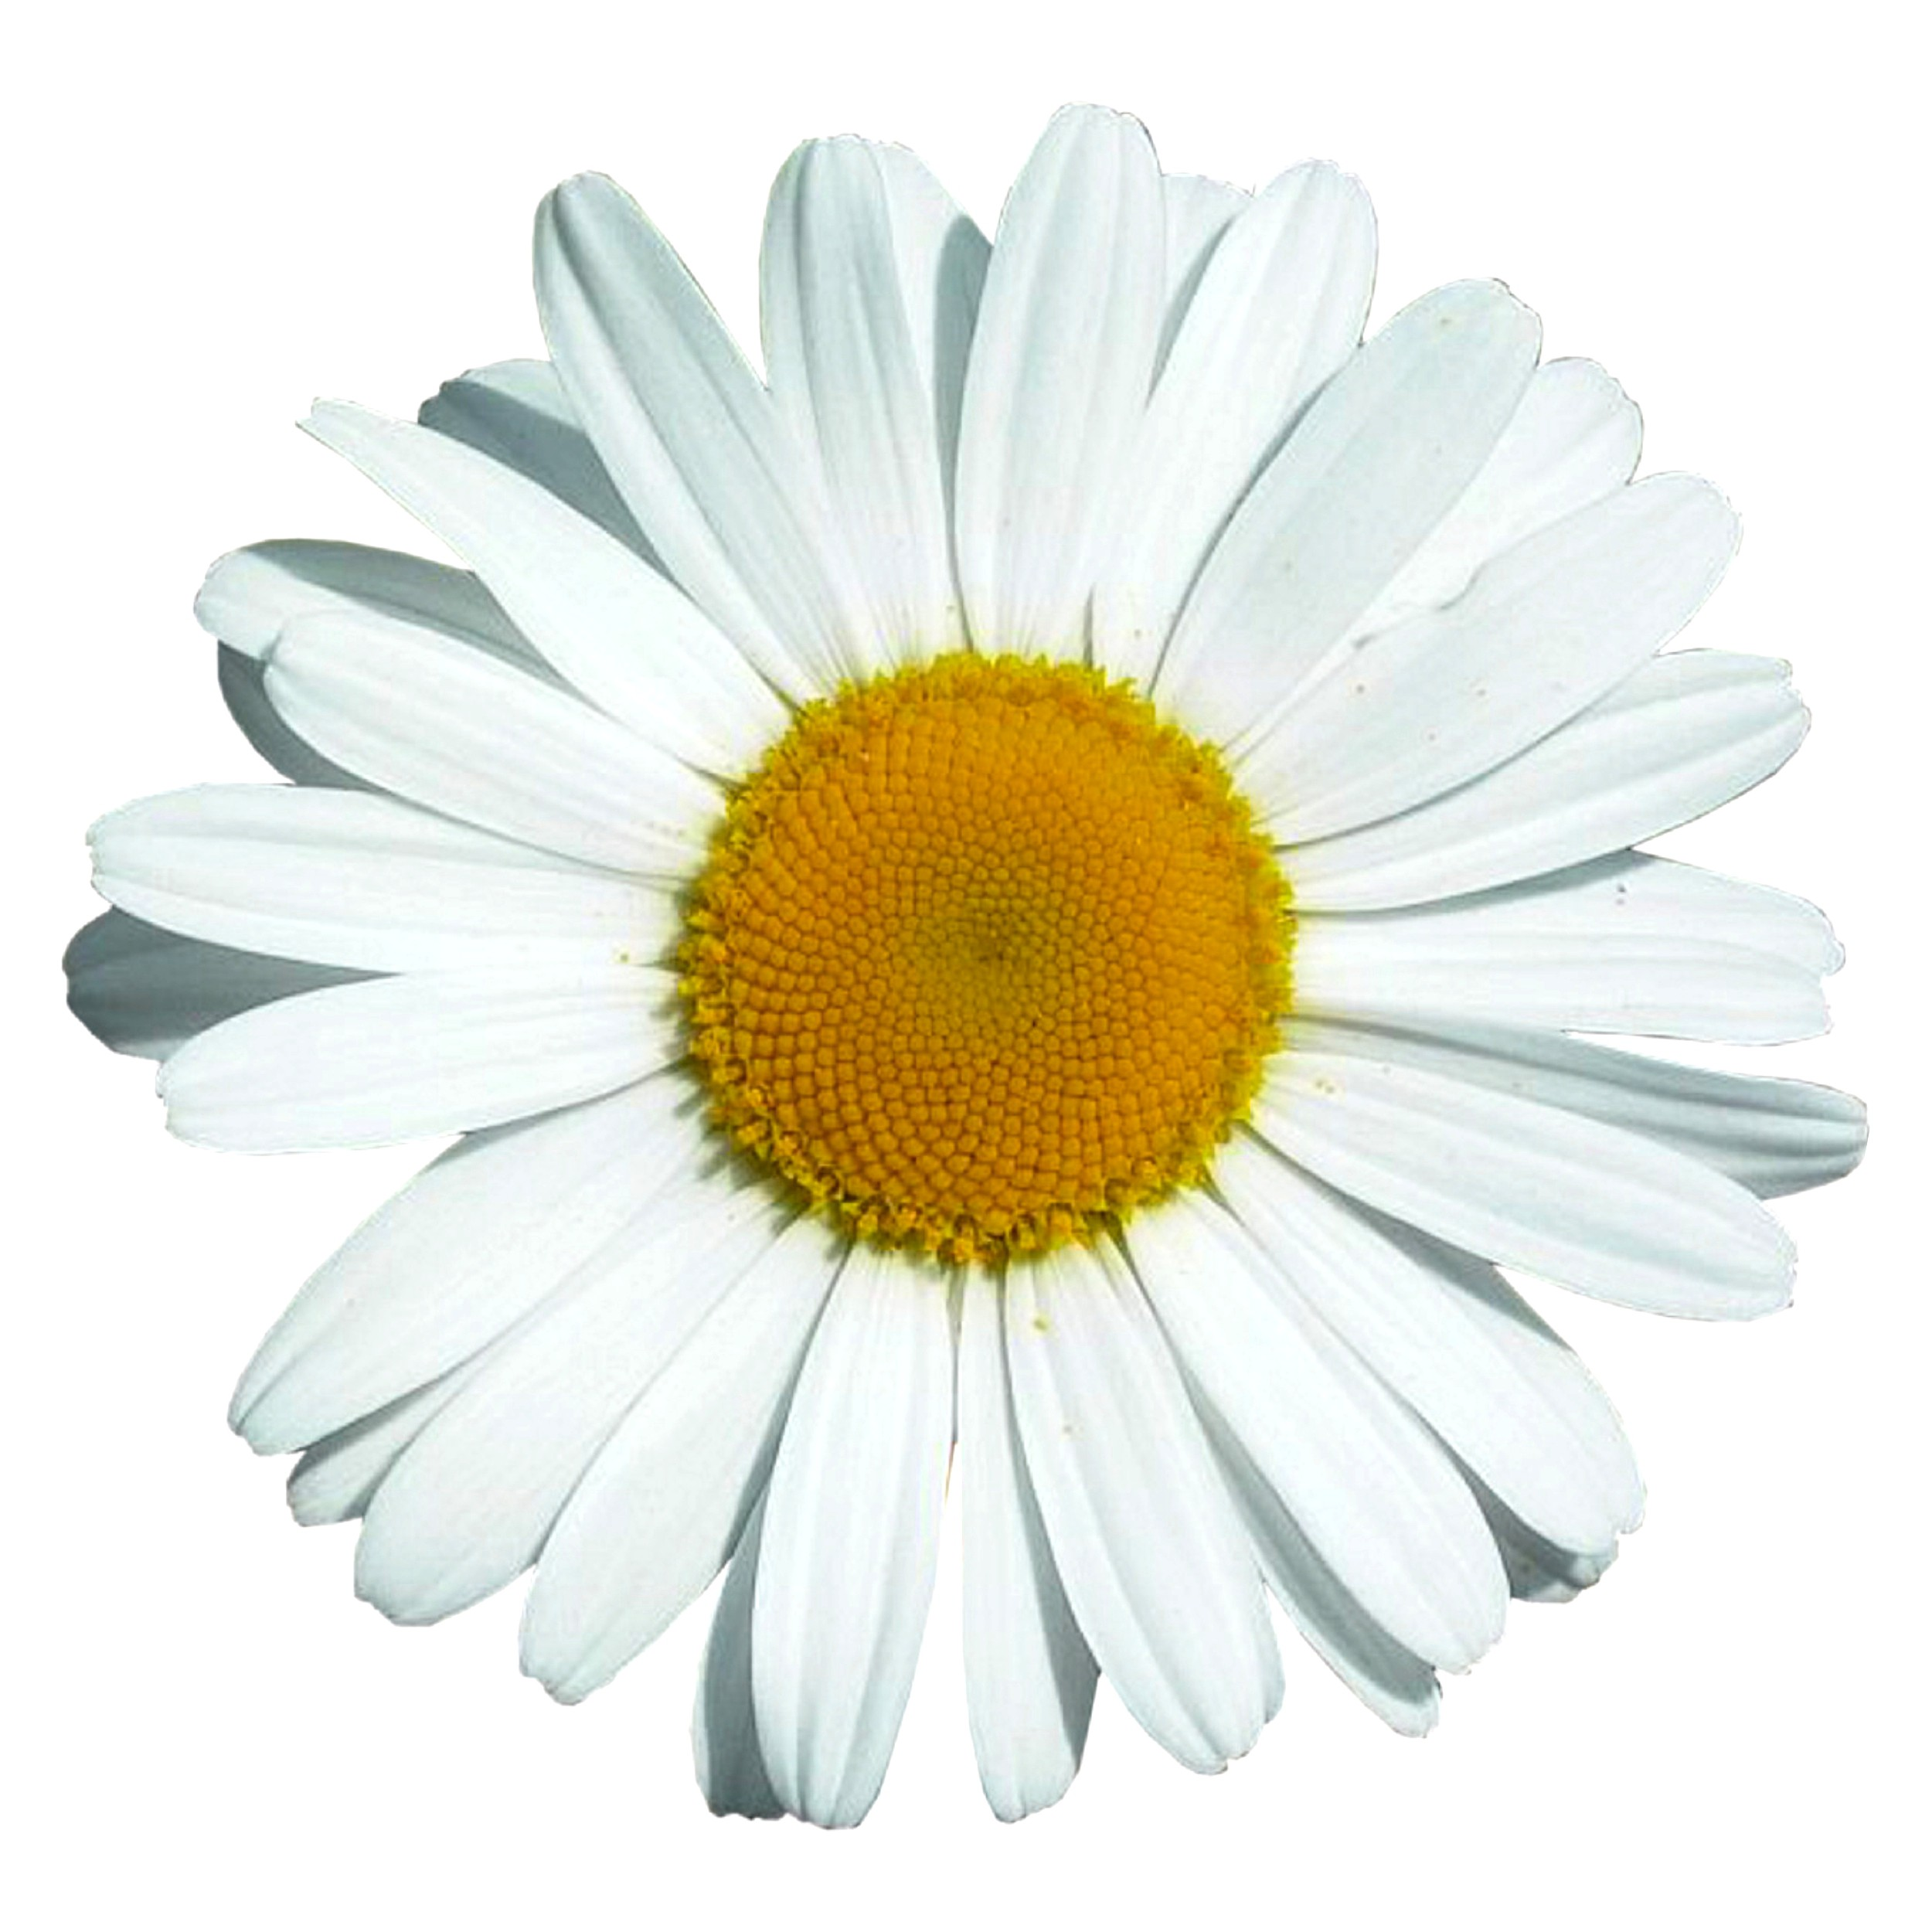 Sticker Oxeye Daisy Flower 180 x 160 mm